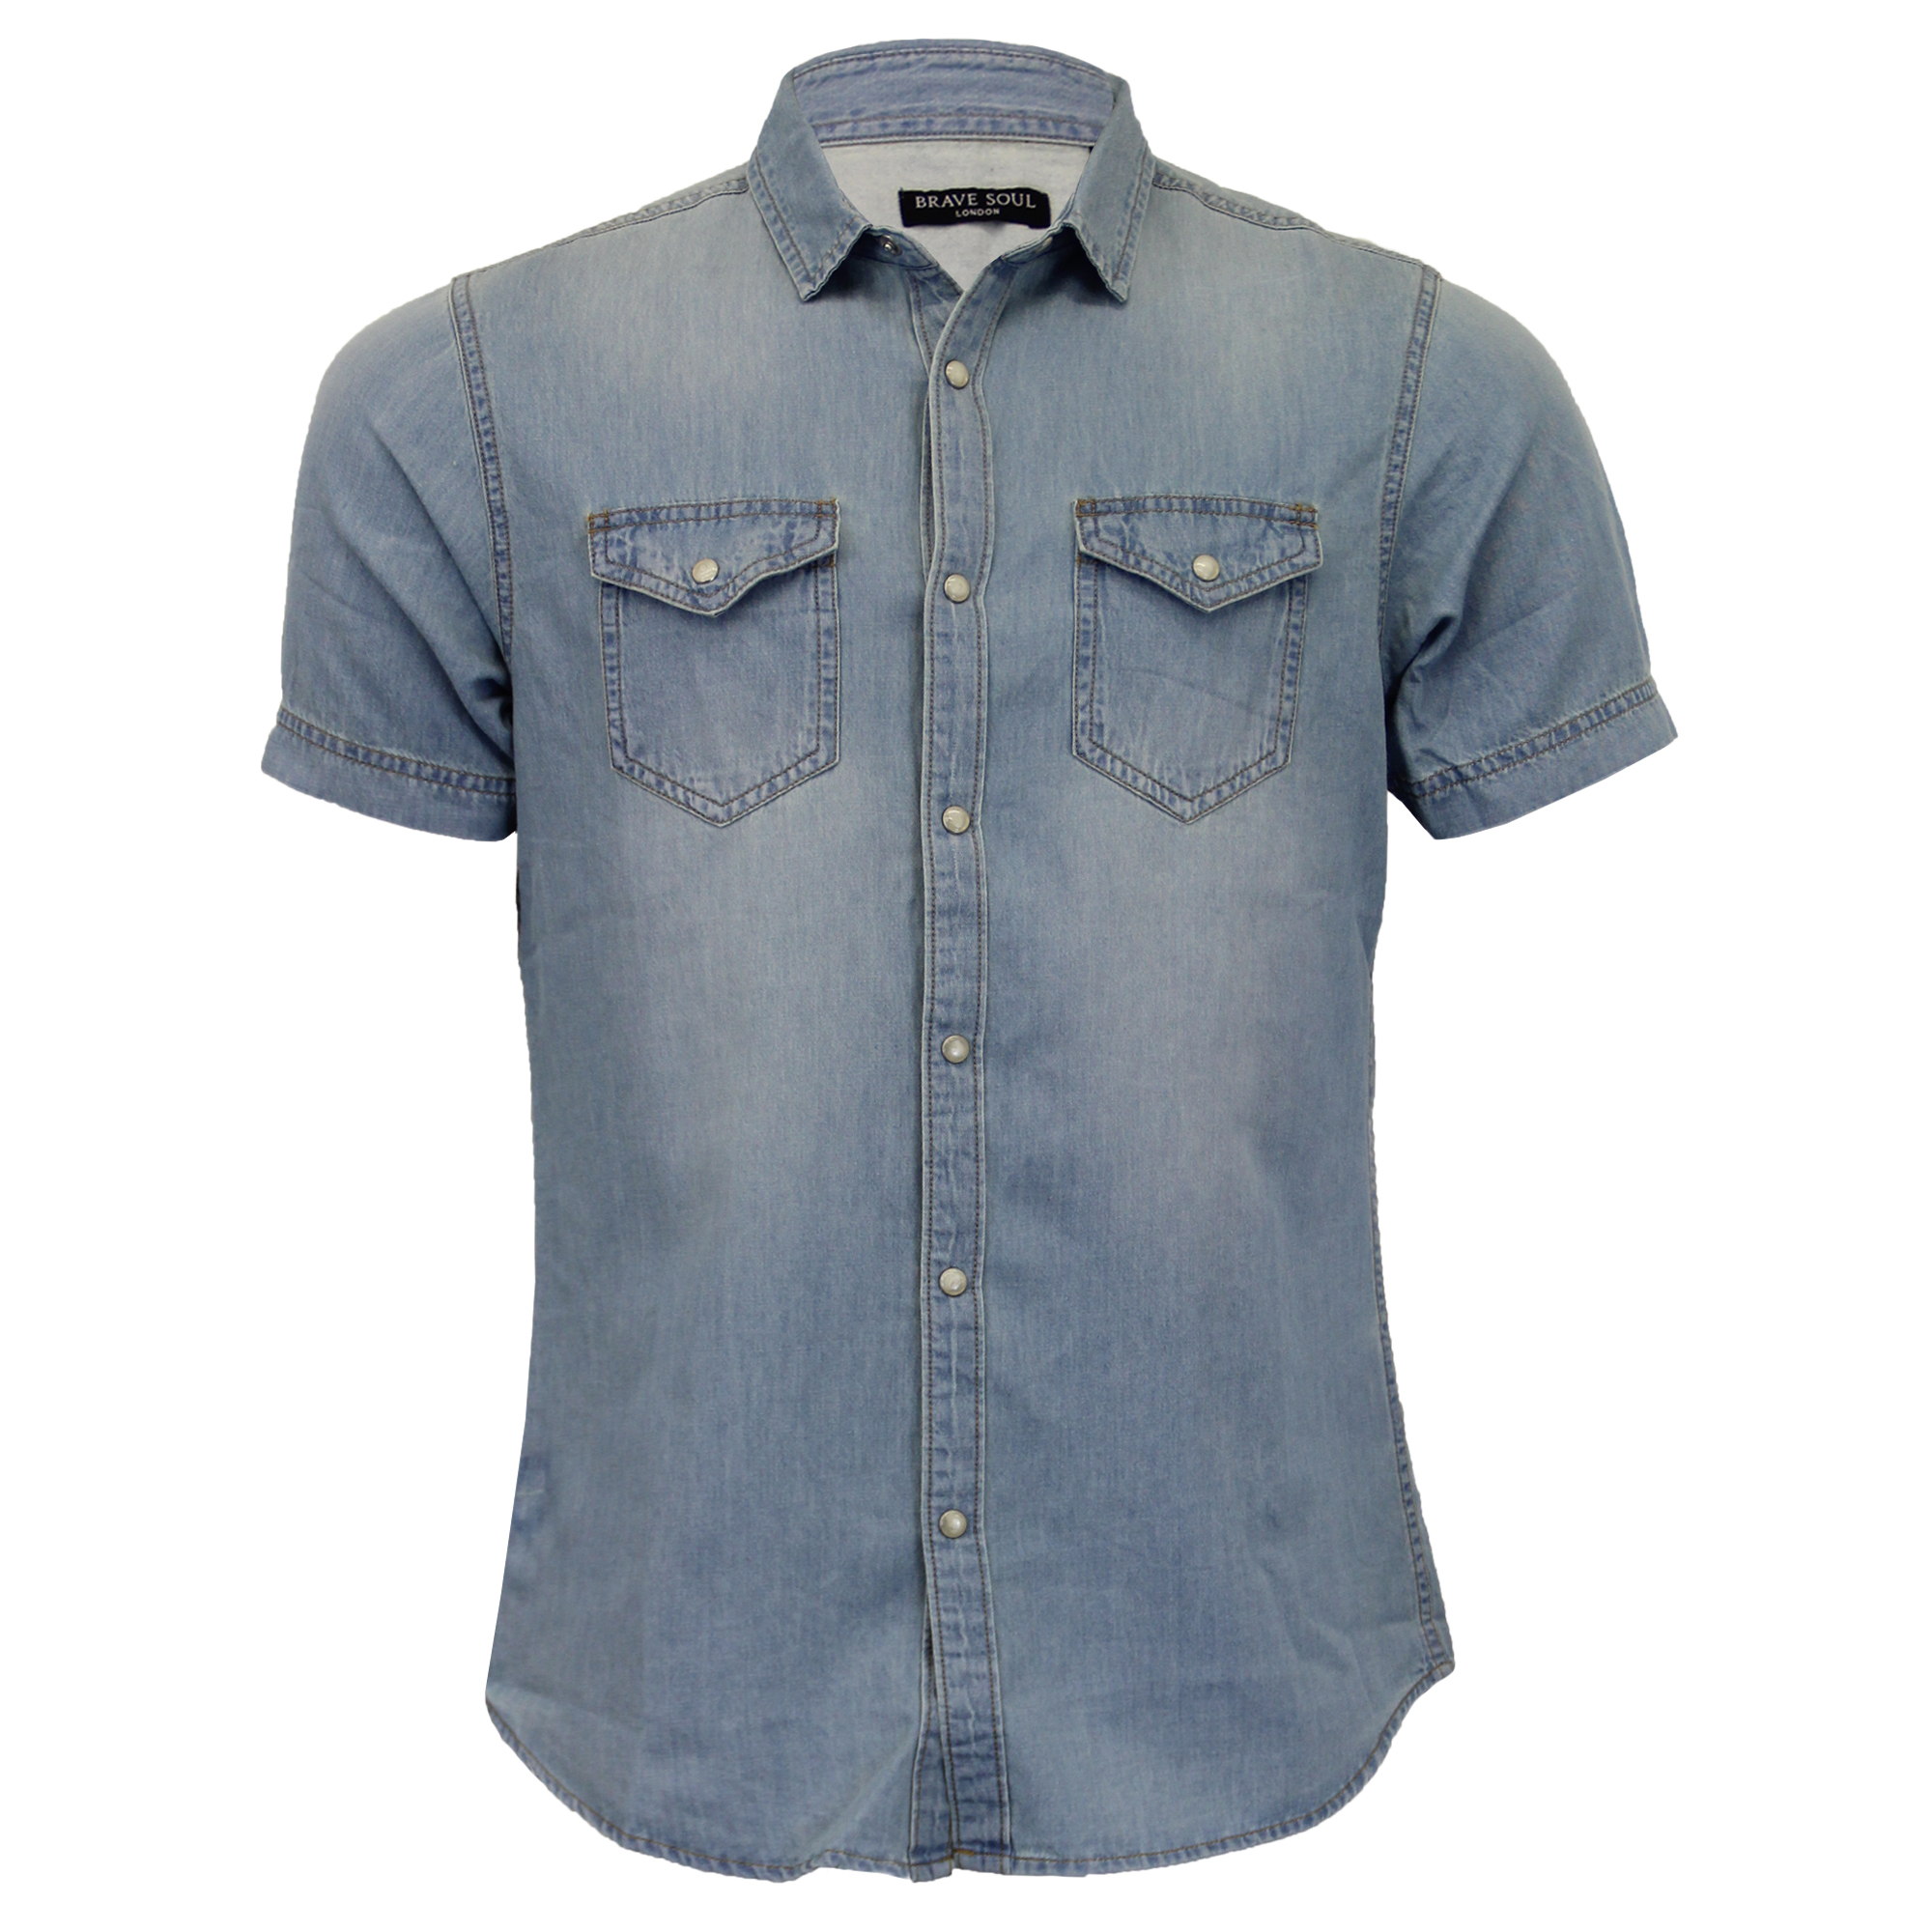 Mens-Denim-Vintage-Shirt-Brave-Soul-039-Amor-039-Short-Sleeved-Faded-Cotton-Summer thumbnail 3